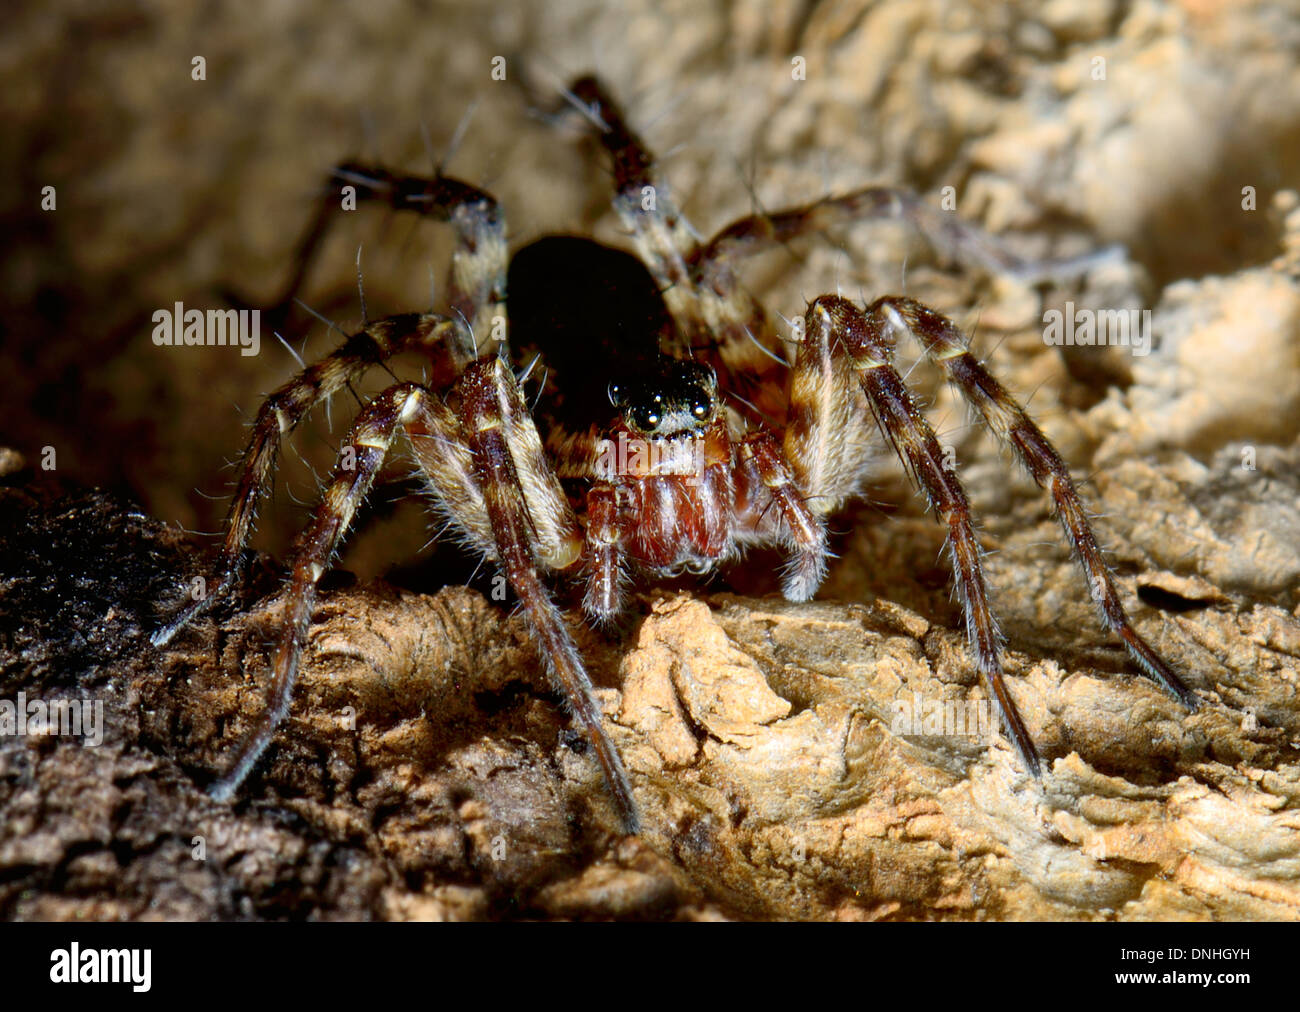 Close up of a Wolf spider, Pardosa amentata, on tree bark - Stock Image